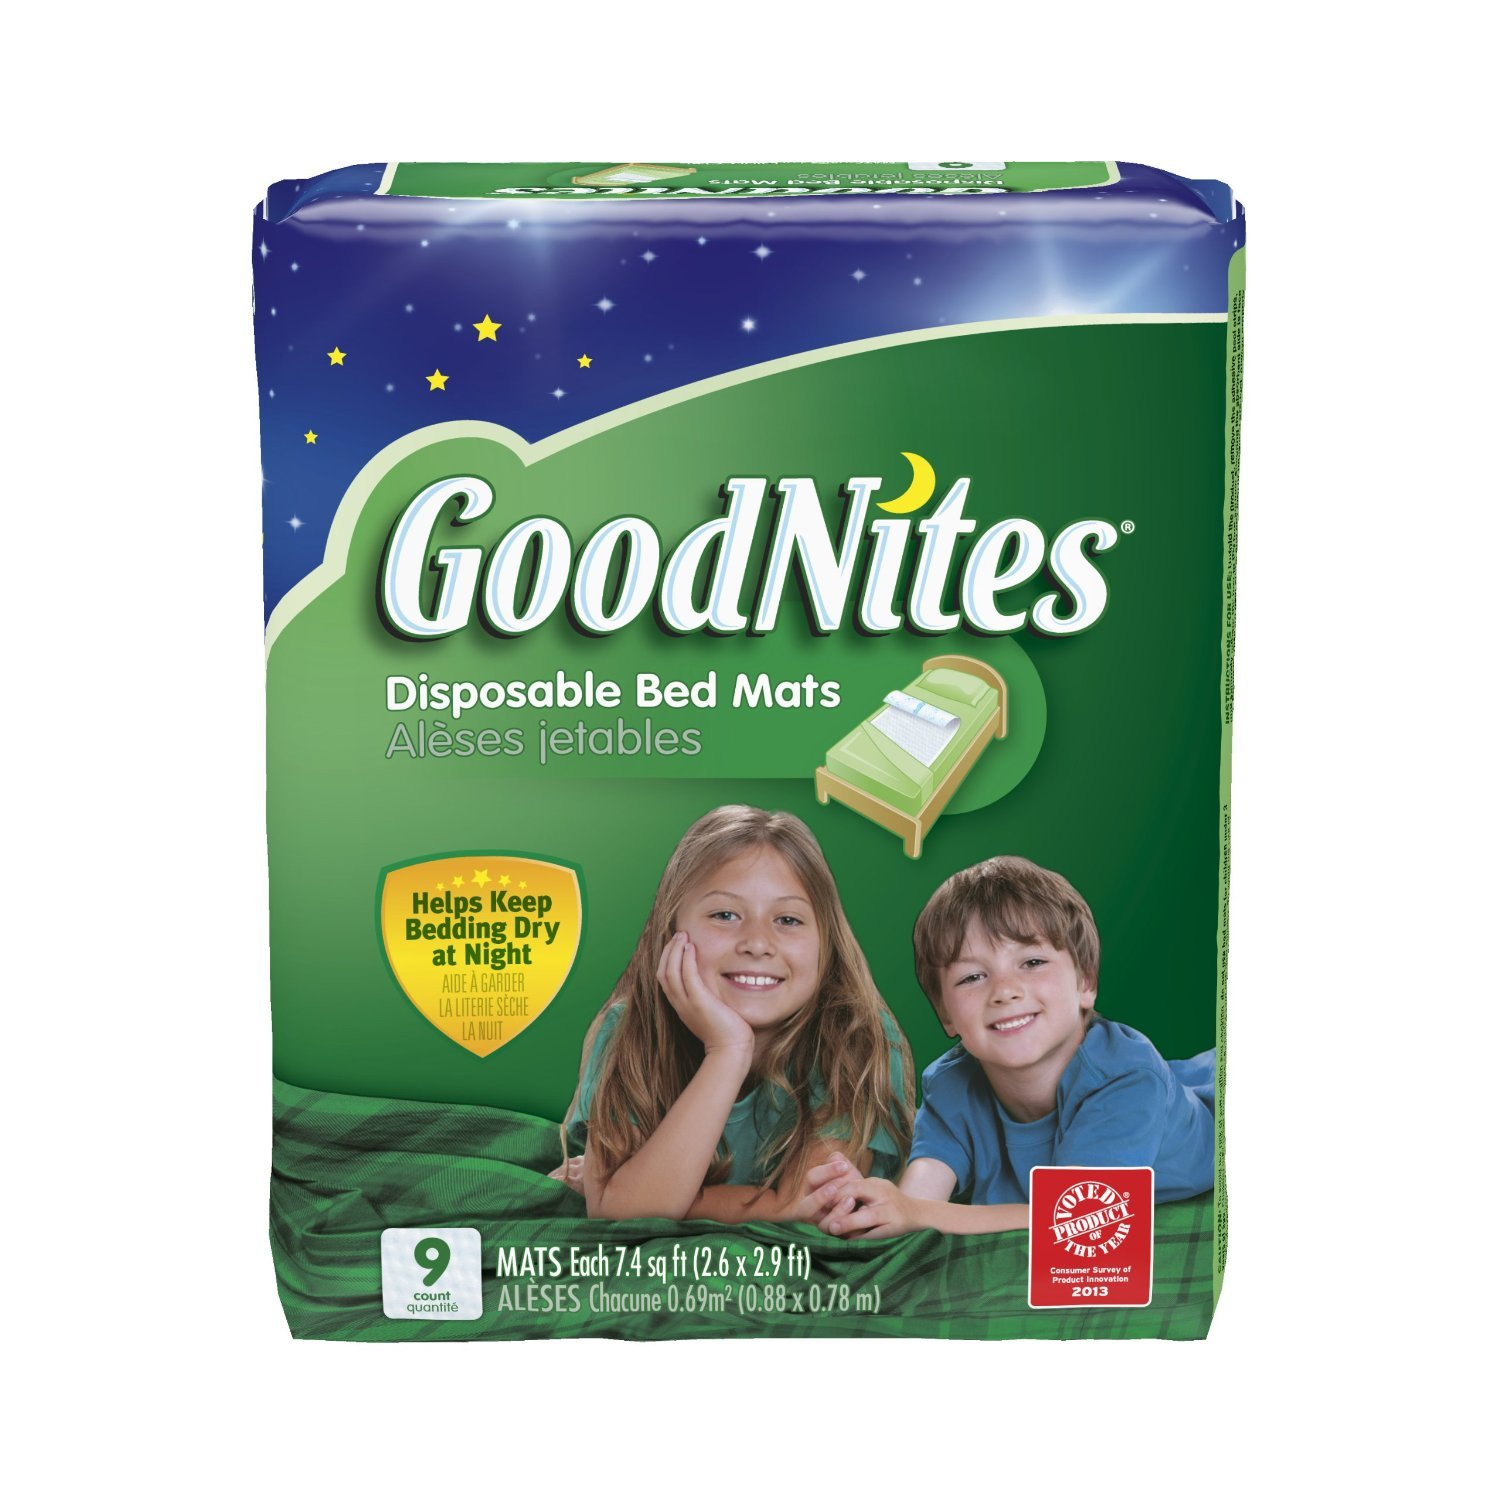 Goodnites Disposable Bed Mats (72 Matts) by GoodNites